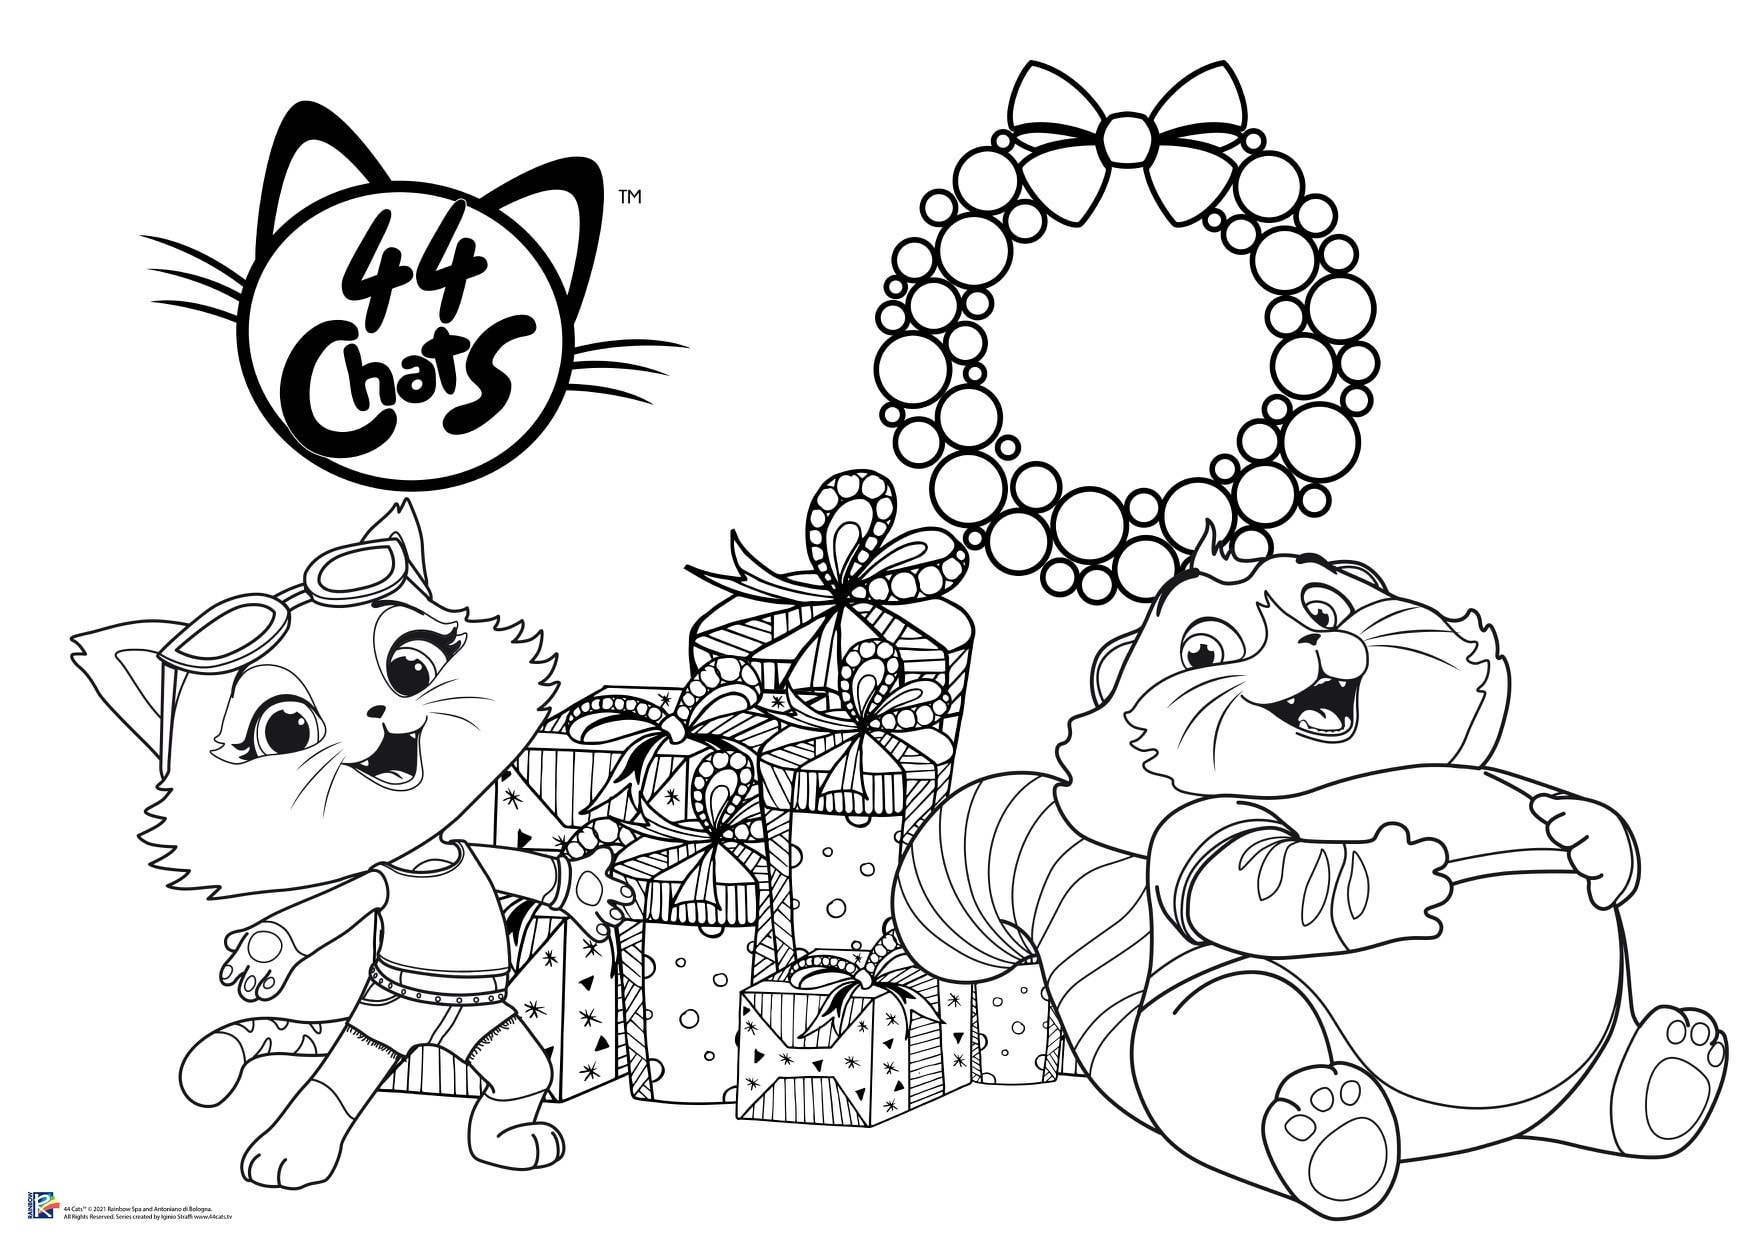 44 cats coloriage noel